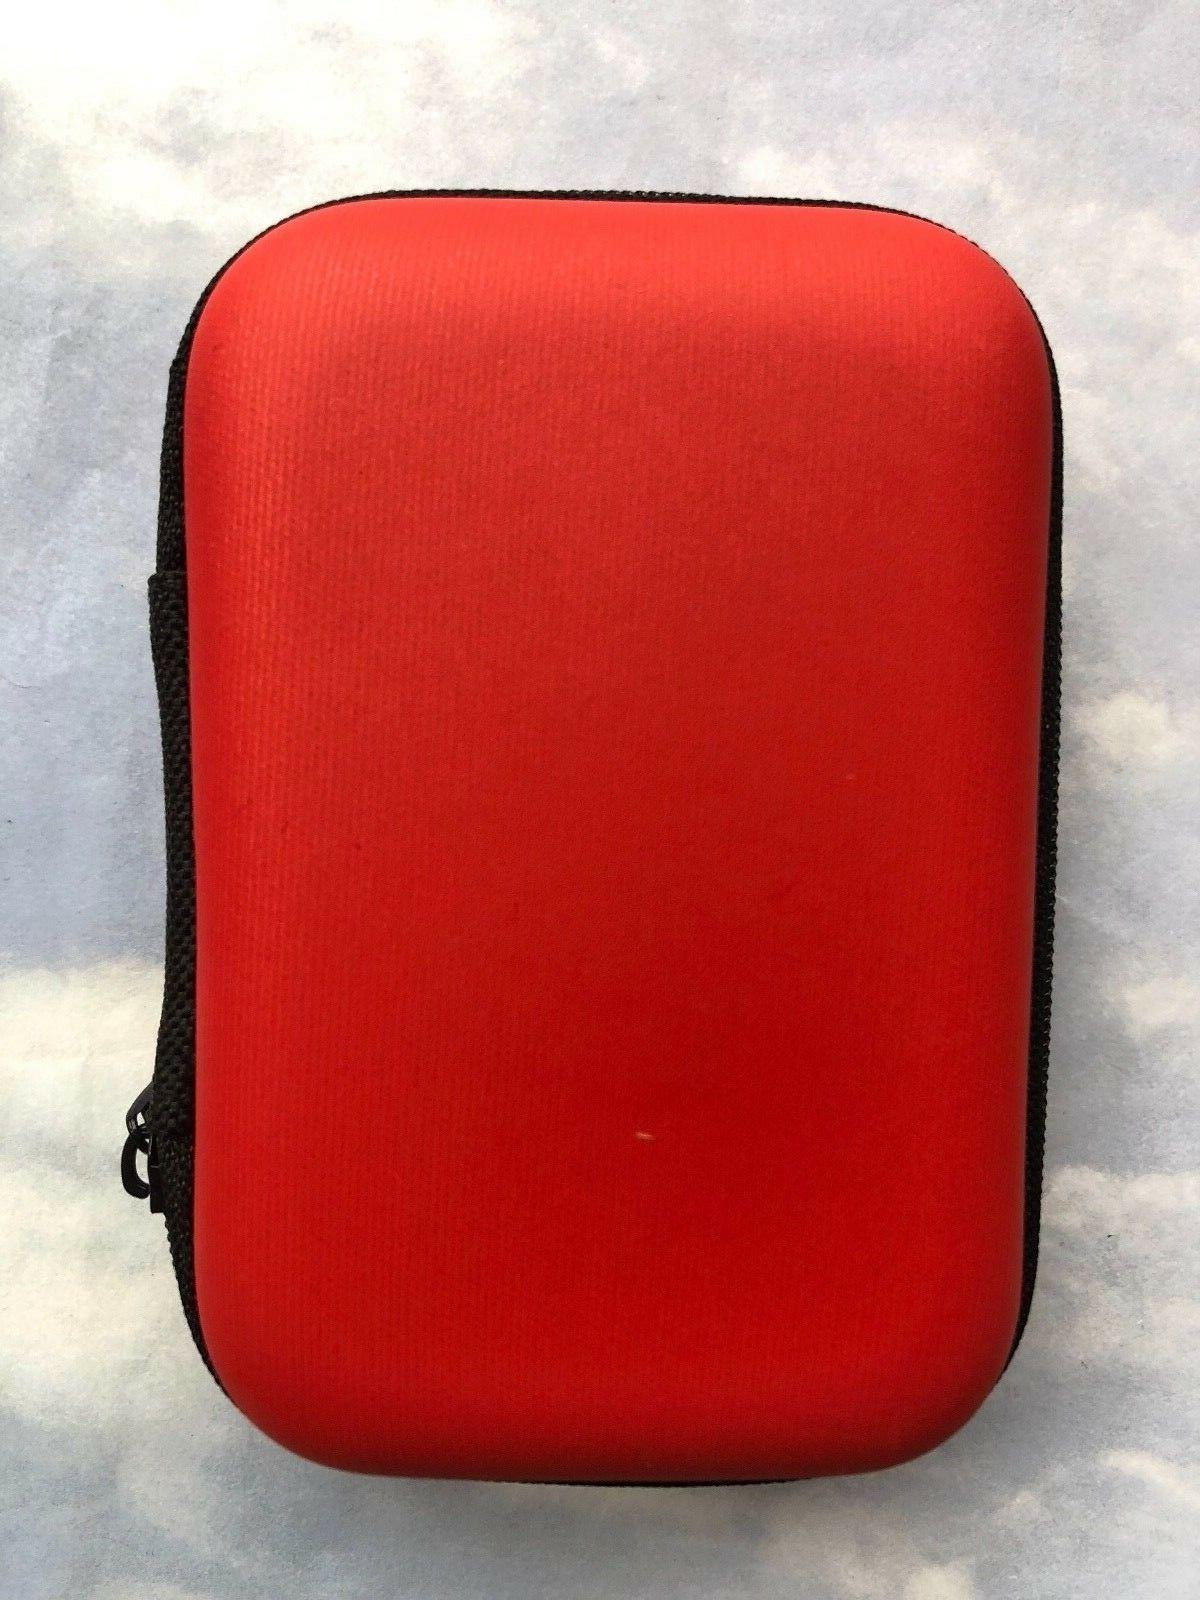 2 Small Earphone Earbud accessory Carrying Case Storage Bag